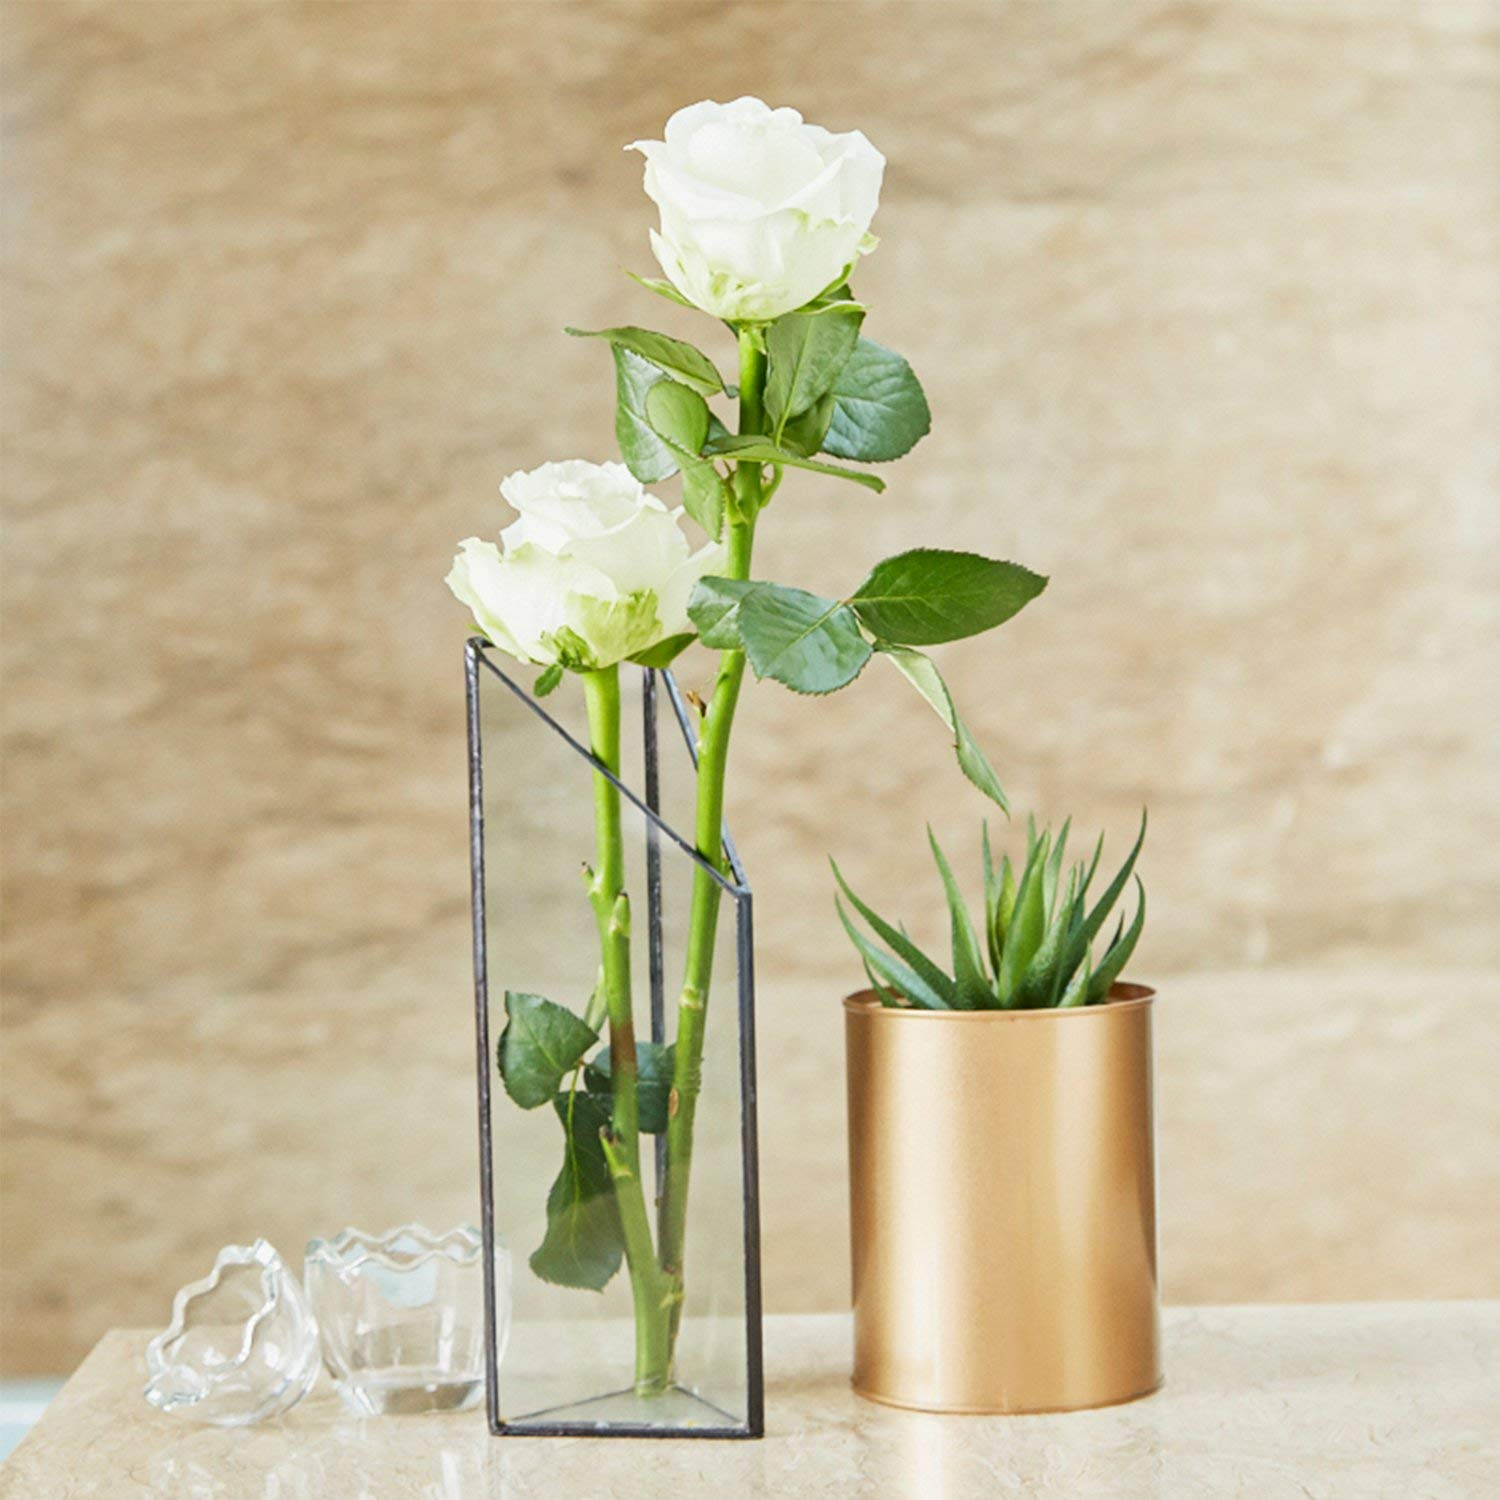 Most Beautiful Flower Vases Design To Decorate Your Table